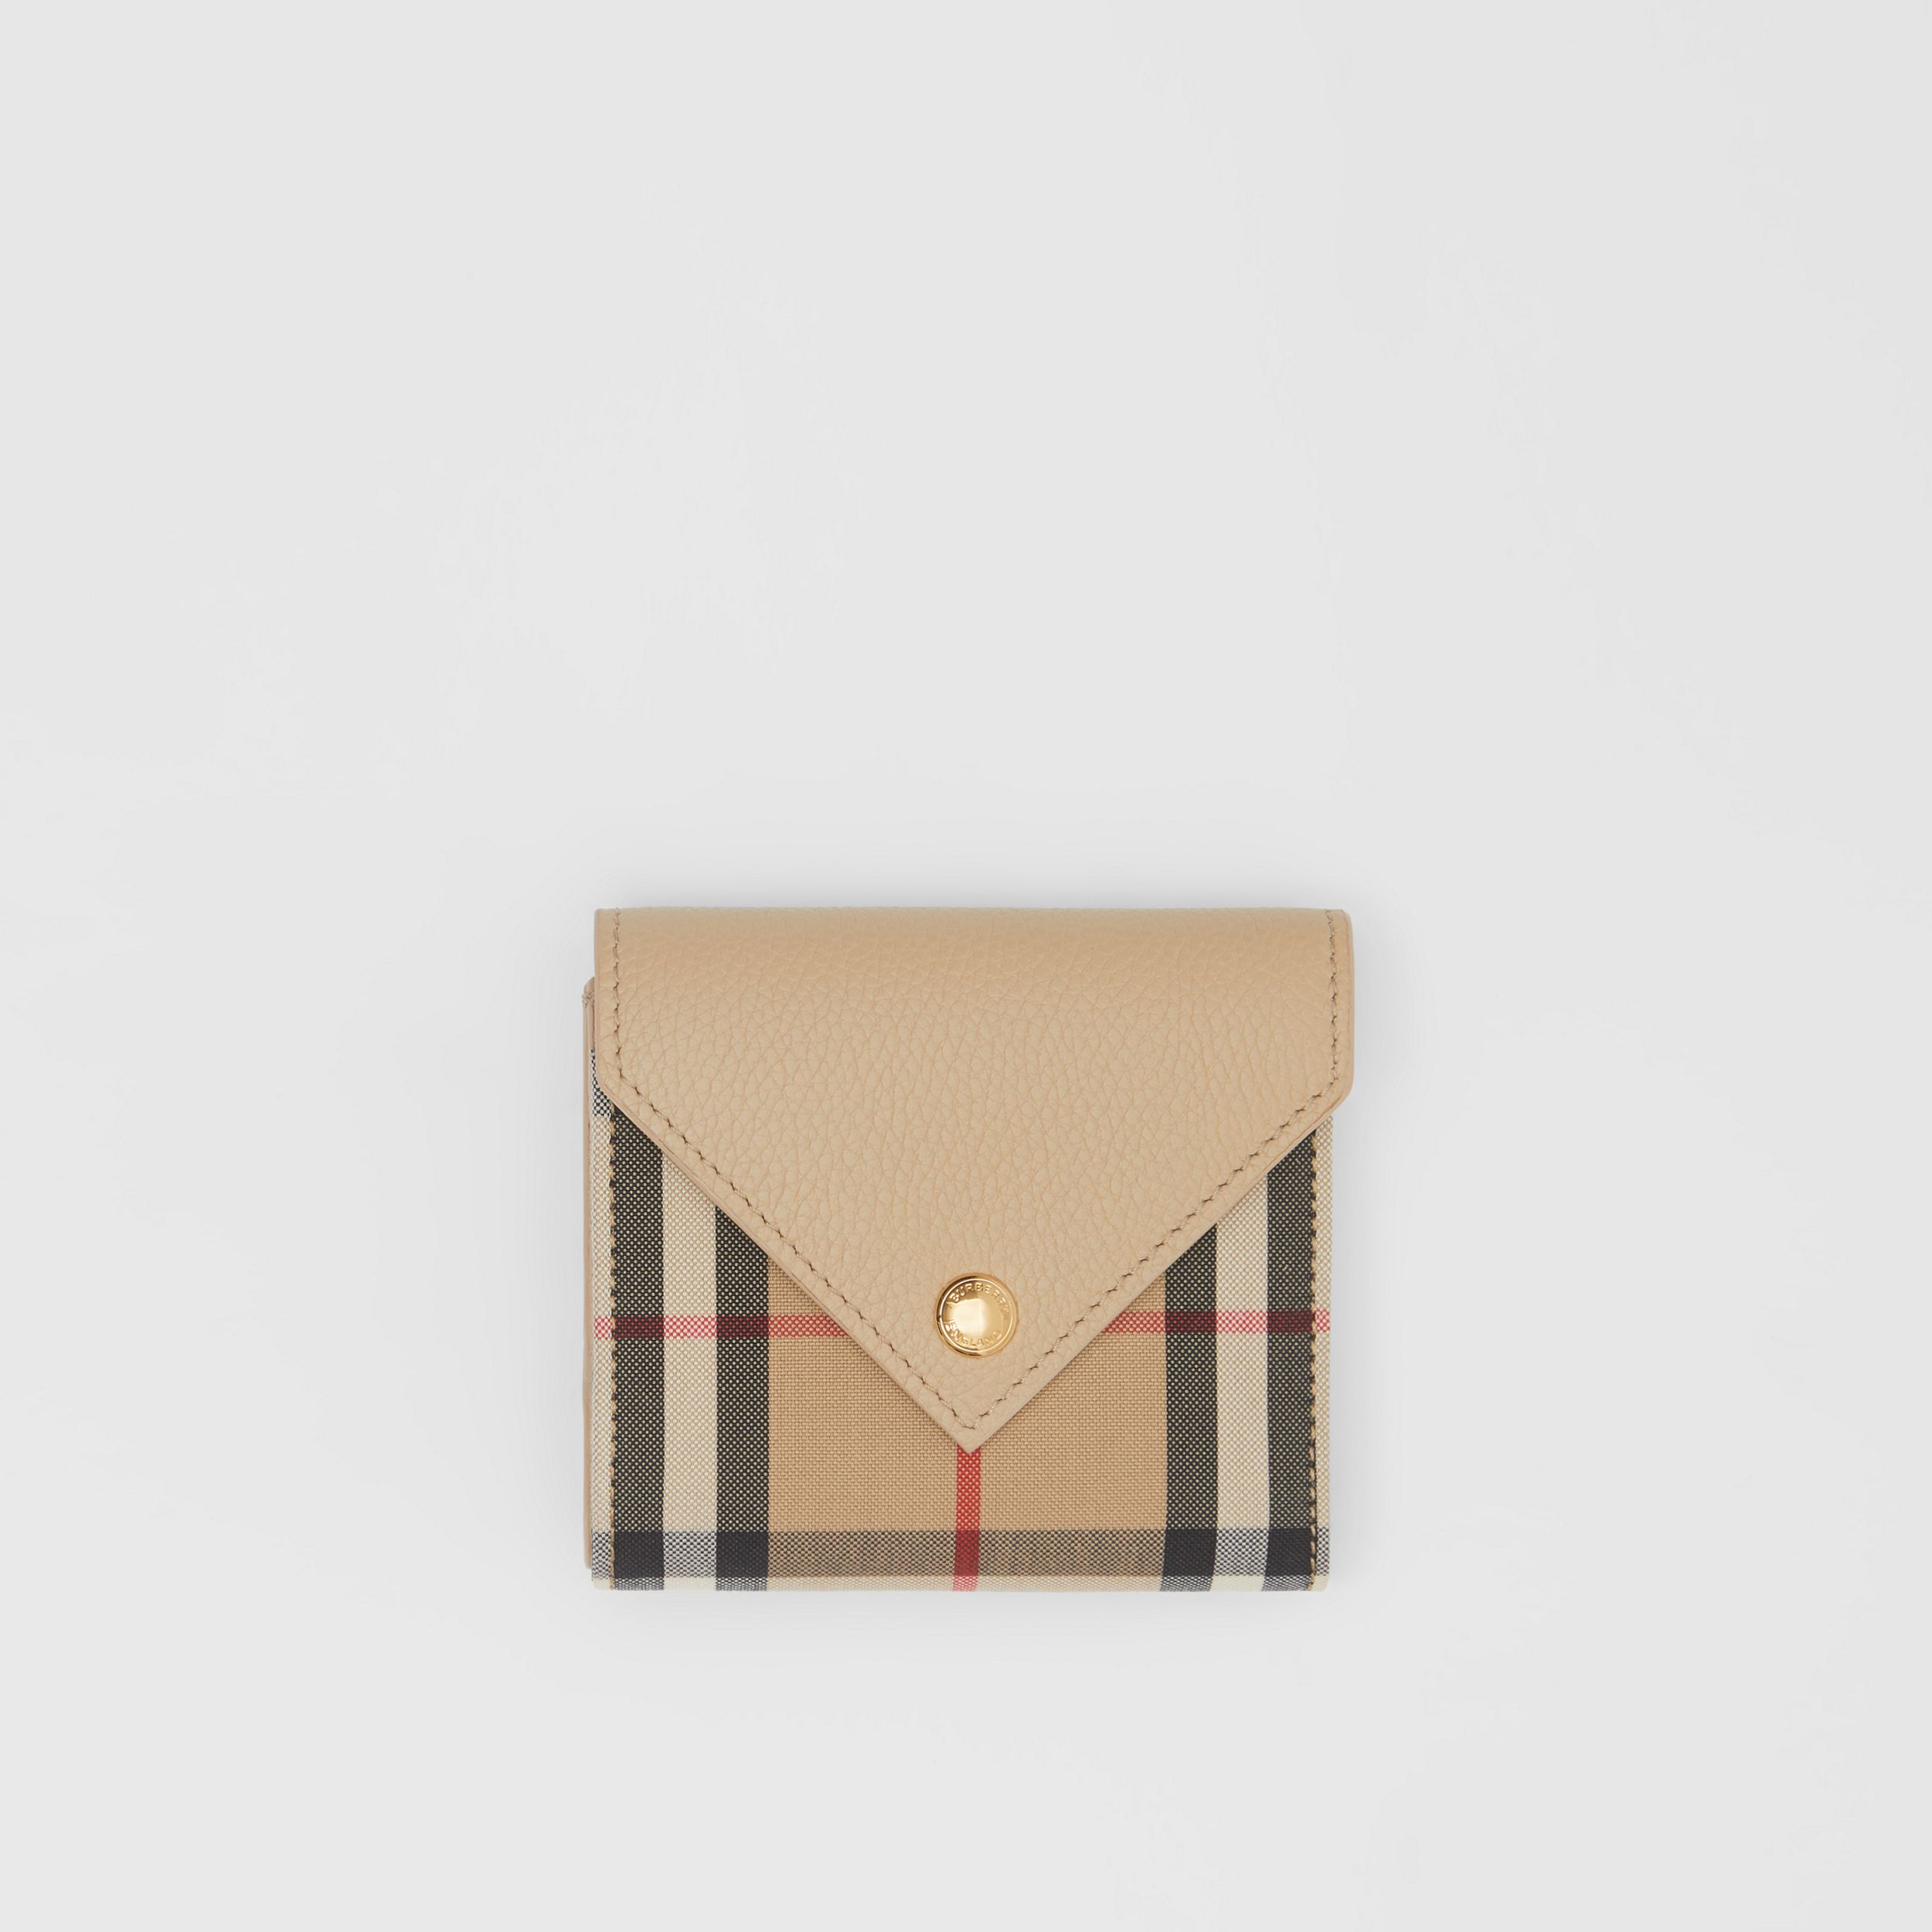 Vintage Check and Grainy Leather Folding Wallet in Light Beige - Women | Burberry - 1